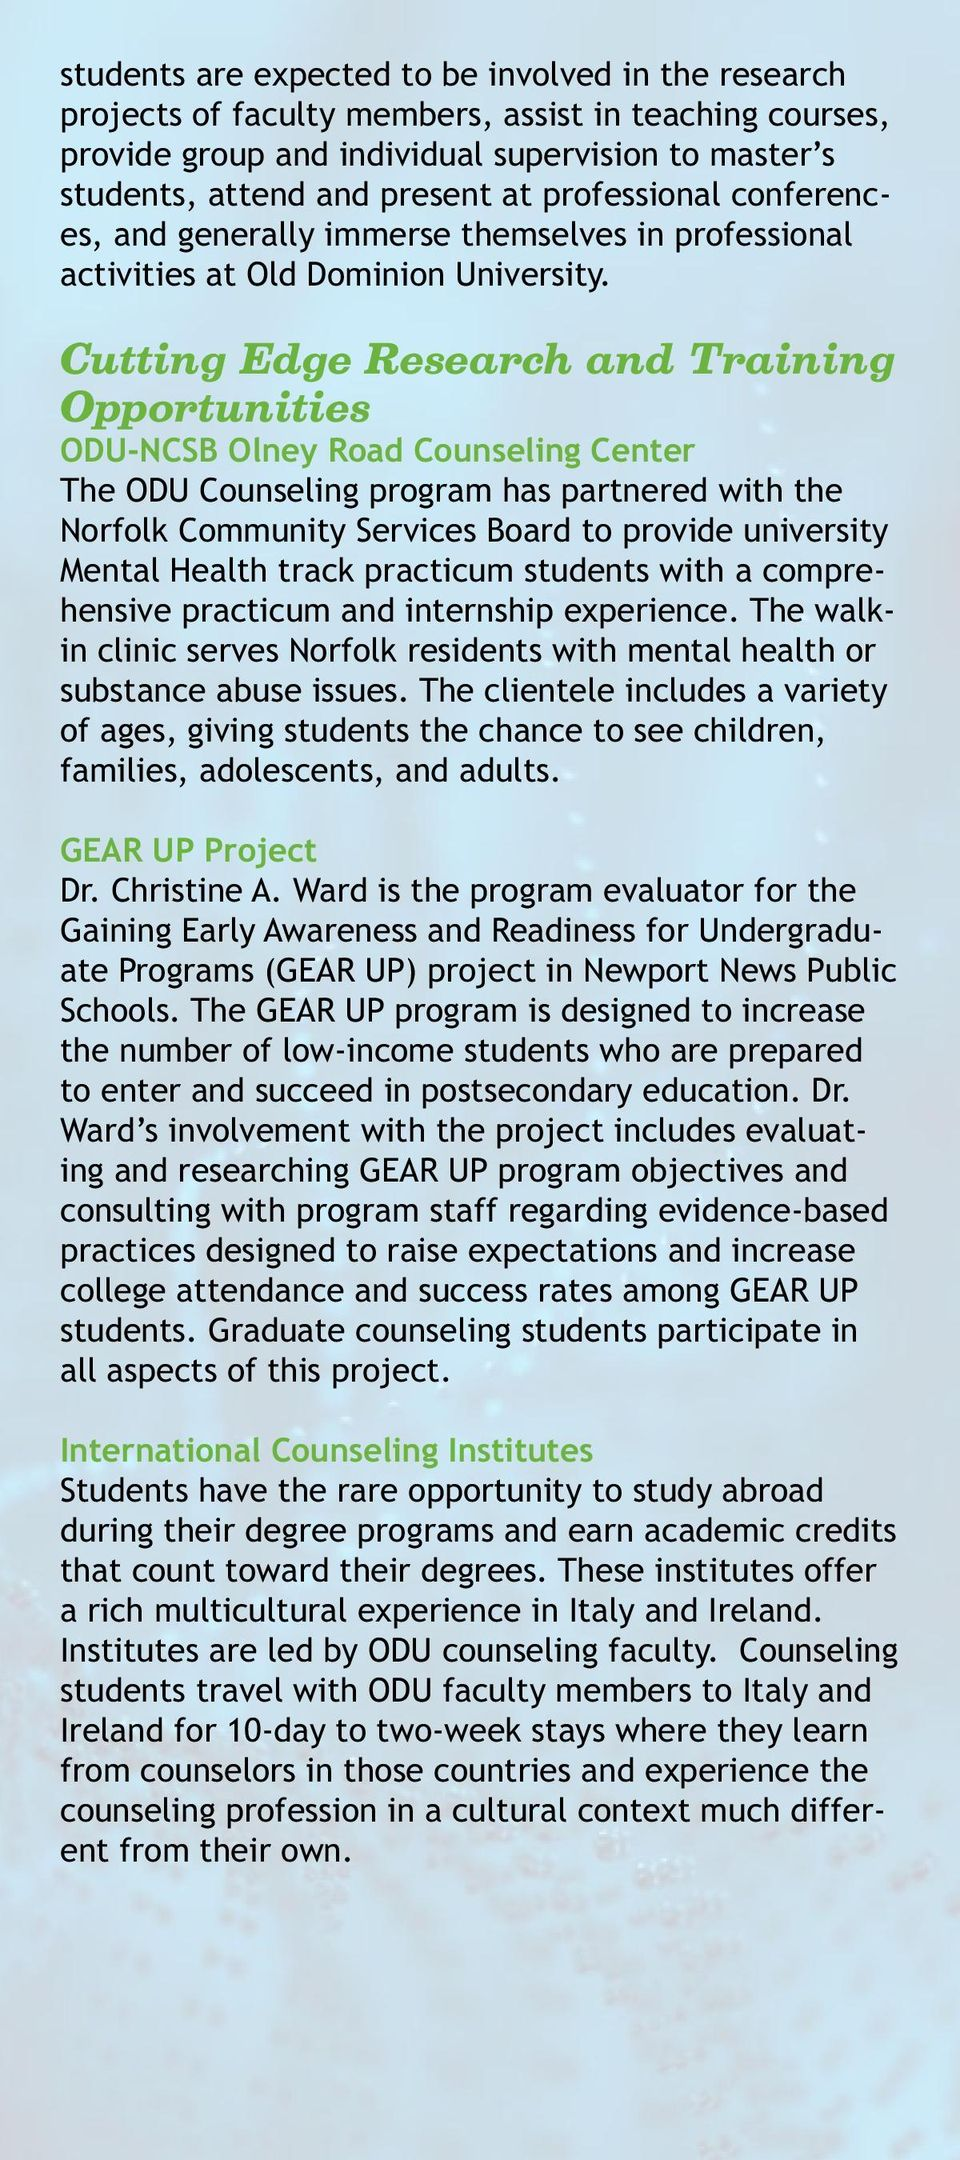 Cutting Edge Research and Training Opportunities ODU-NCSB Olney Road Counseling Center The ODU Counseling program has partnered with the Norfolk Community Services Board to provide university Mental